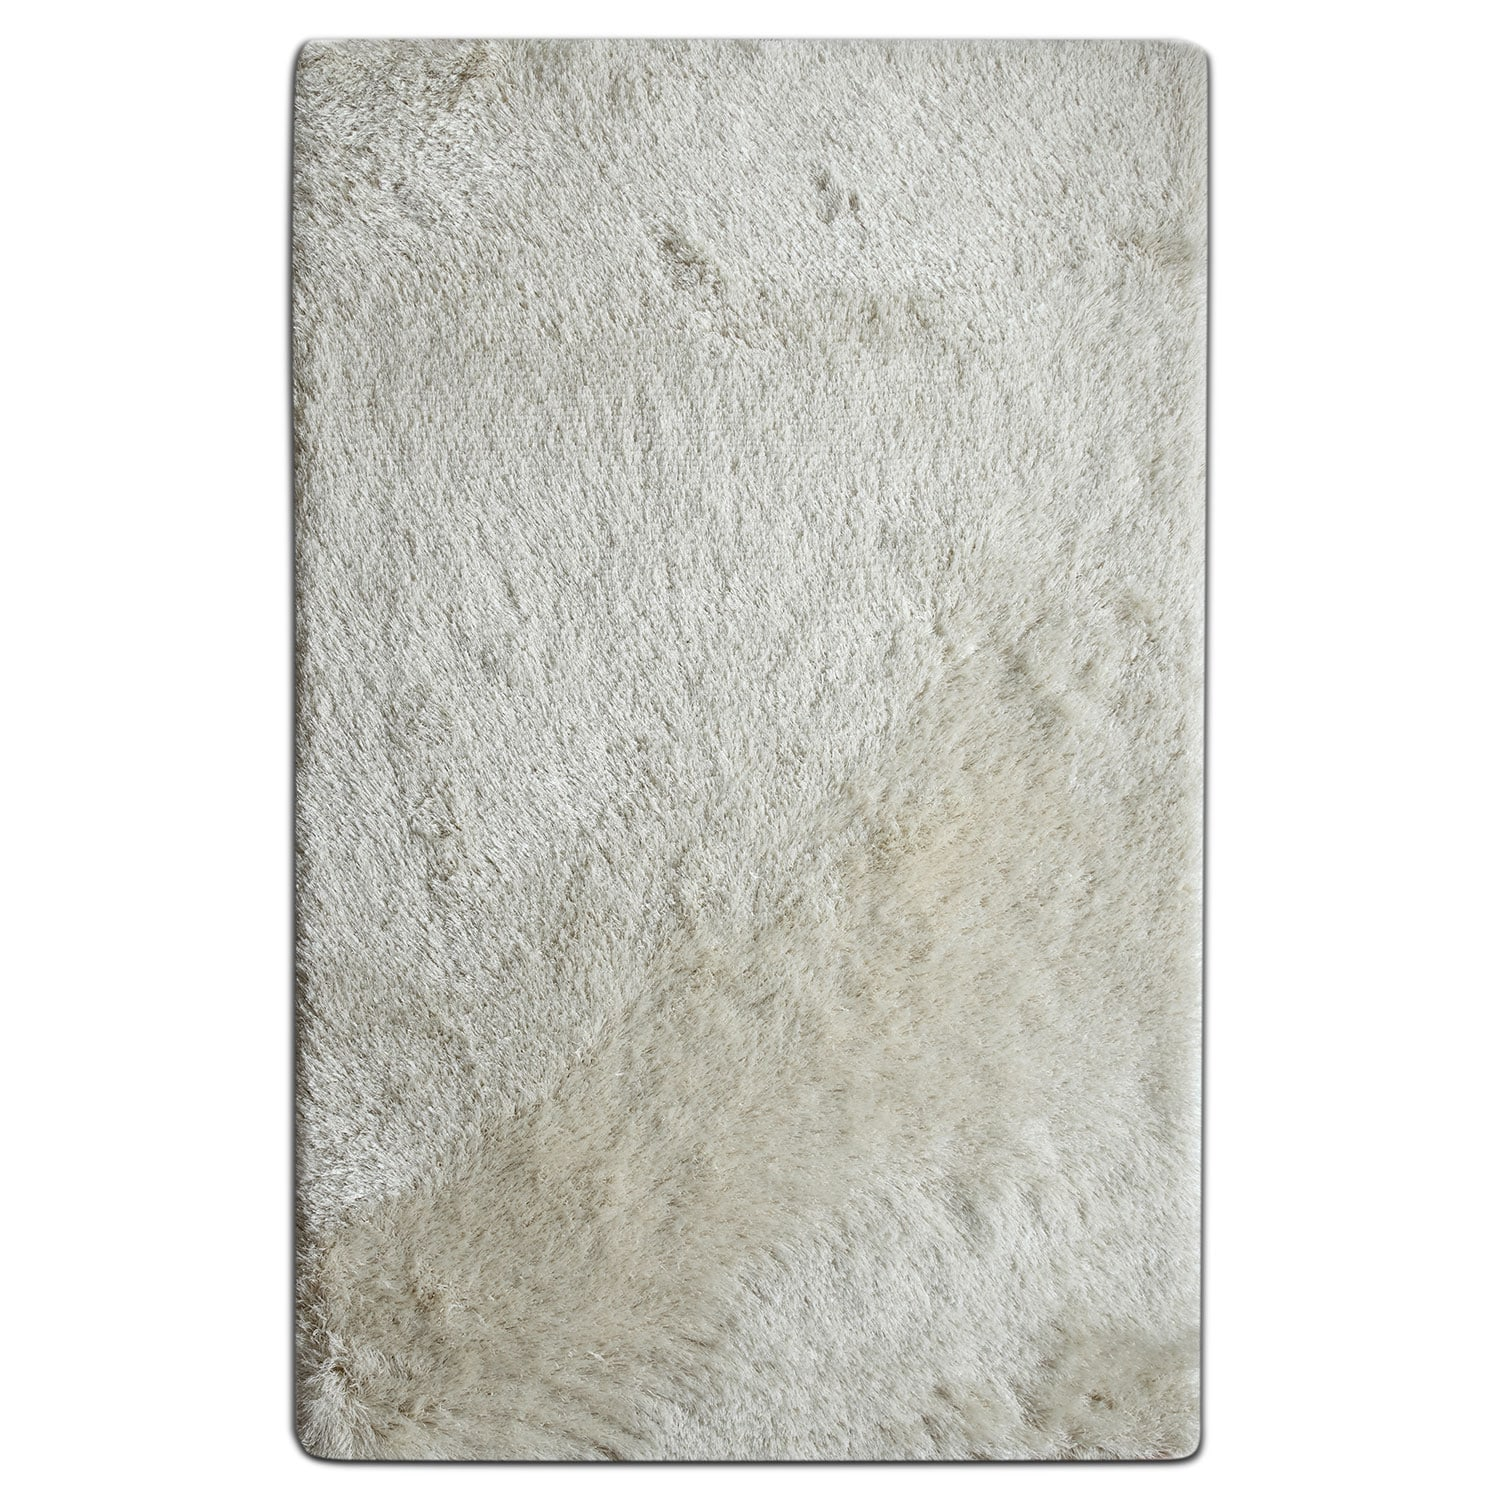 Rugs - Luxe 5' x 8' Area Rug - Ivory